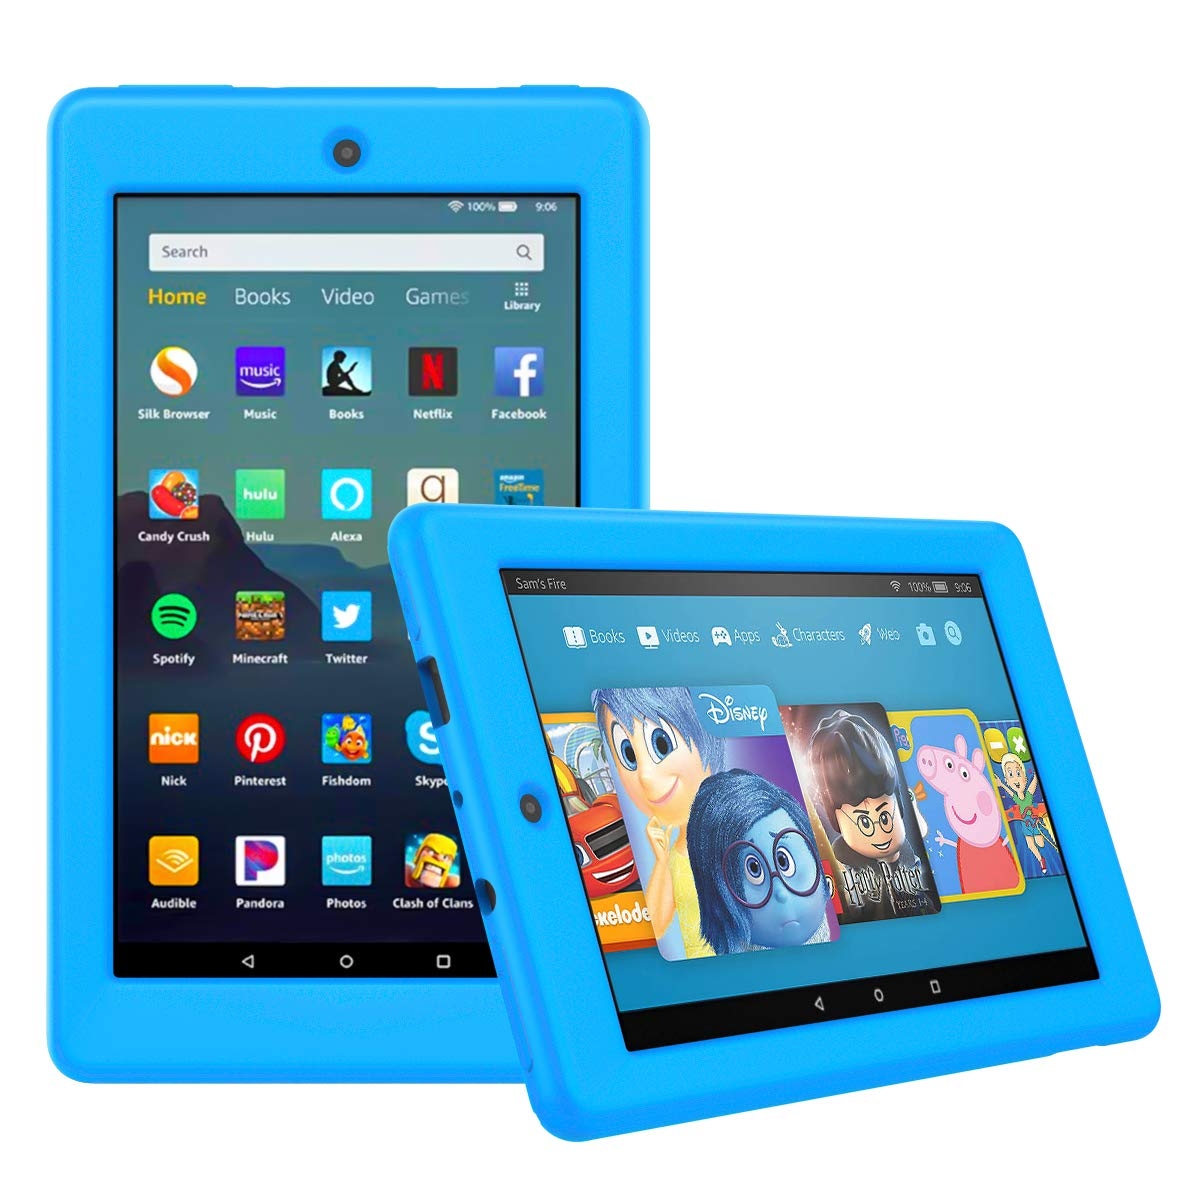 MoKo Case Fits All-New Amazon Fire 7 Tablet (9th Generation, 2019 Release), Ultra-Flexible Silicone Protective Lightweight Shockproof Impact-Resistant Back Cover Shell - Blue